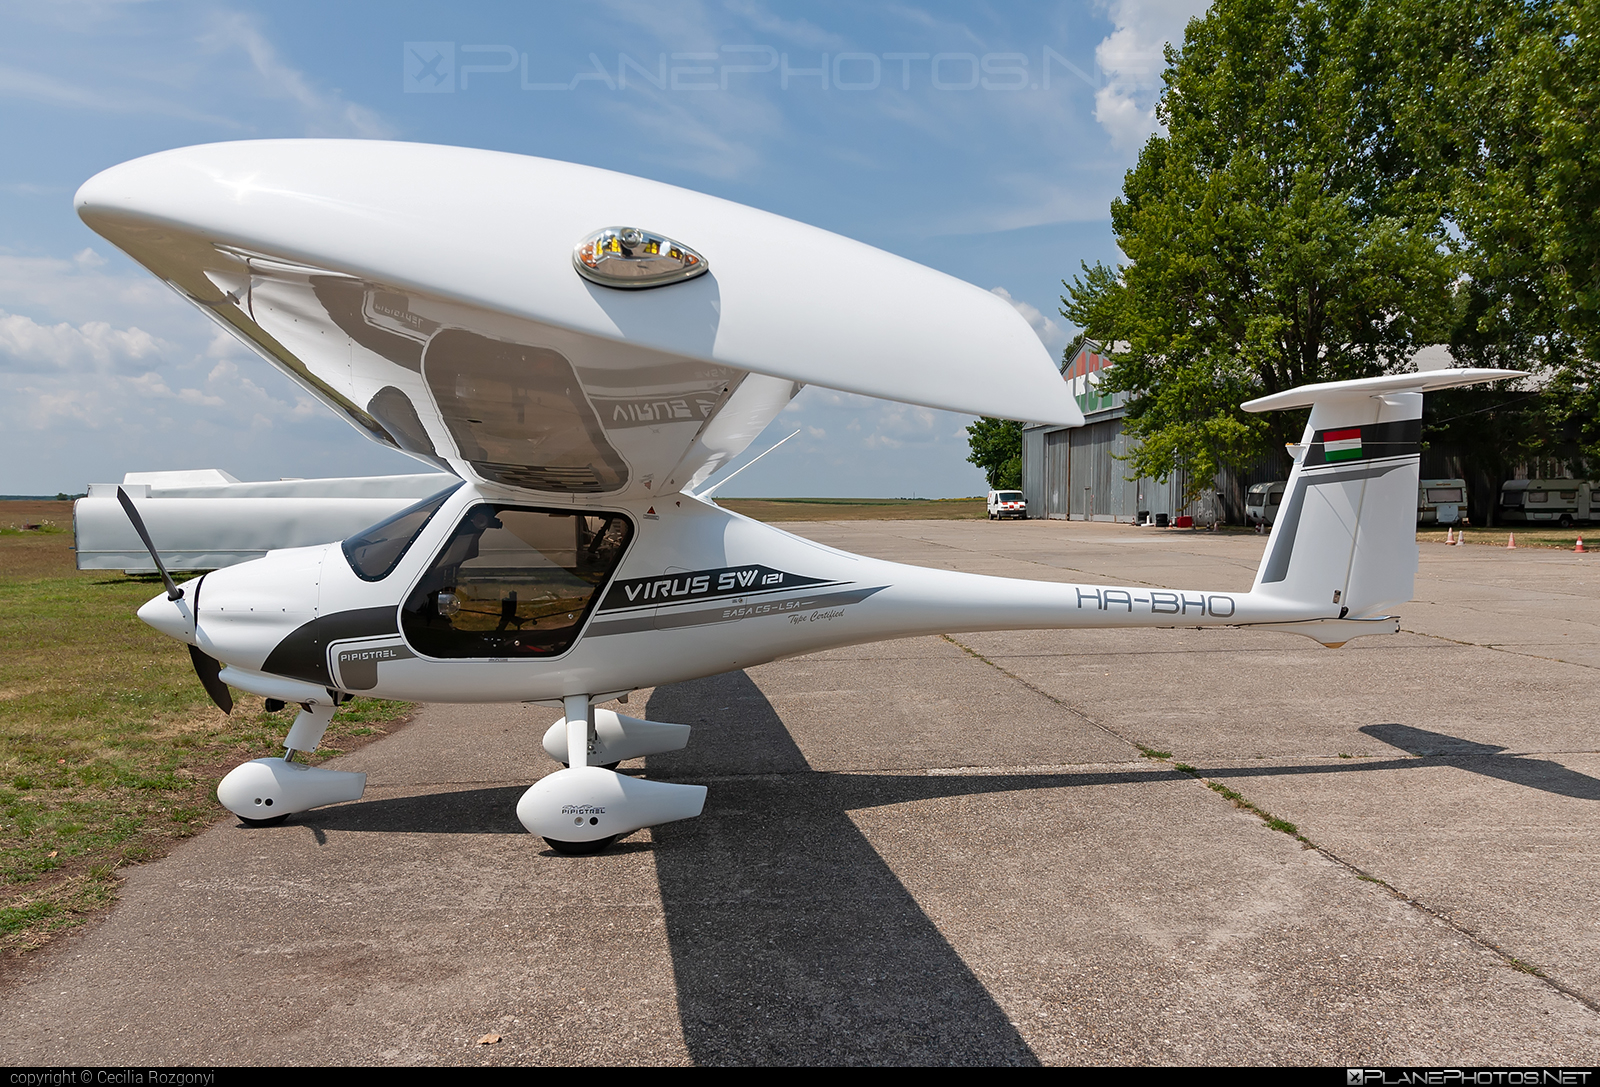 Pipistrel Virus SW 121 - HA-BHO operated by Private operator #pipistrel #pipistrelvirus #virussw121